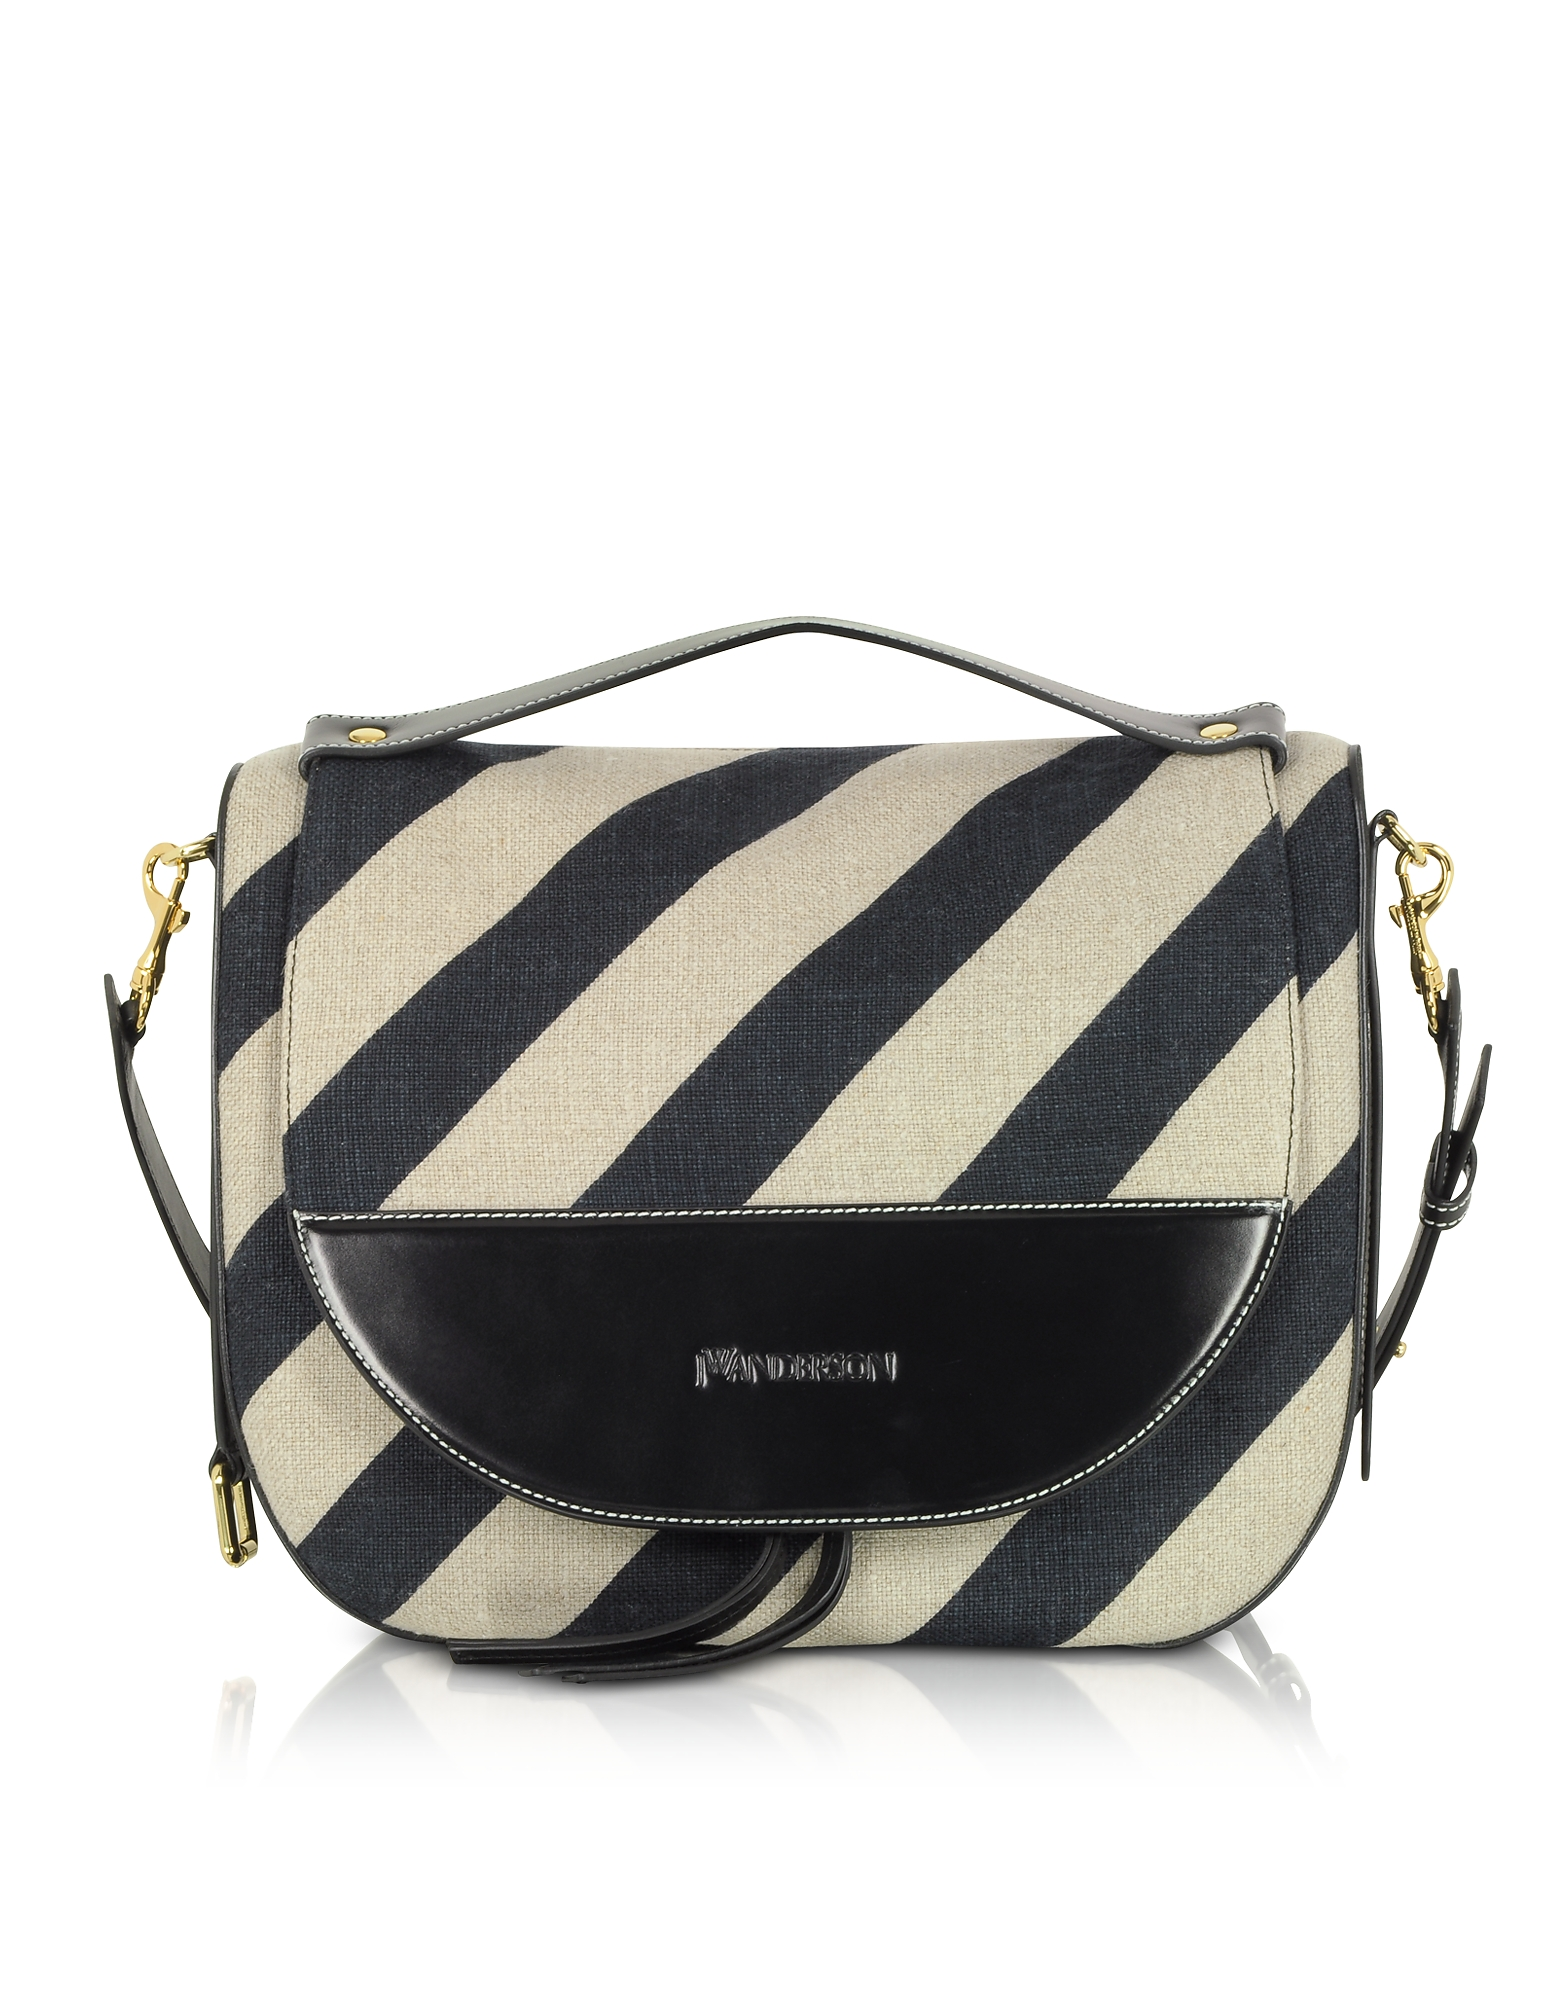 Image of JW Anderson Designer Handbags, Black and Off White Striped Linen Moon Shoulder Bag